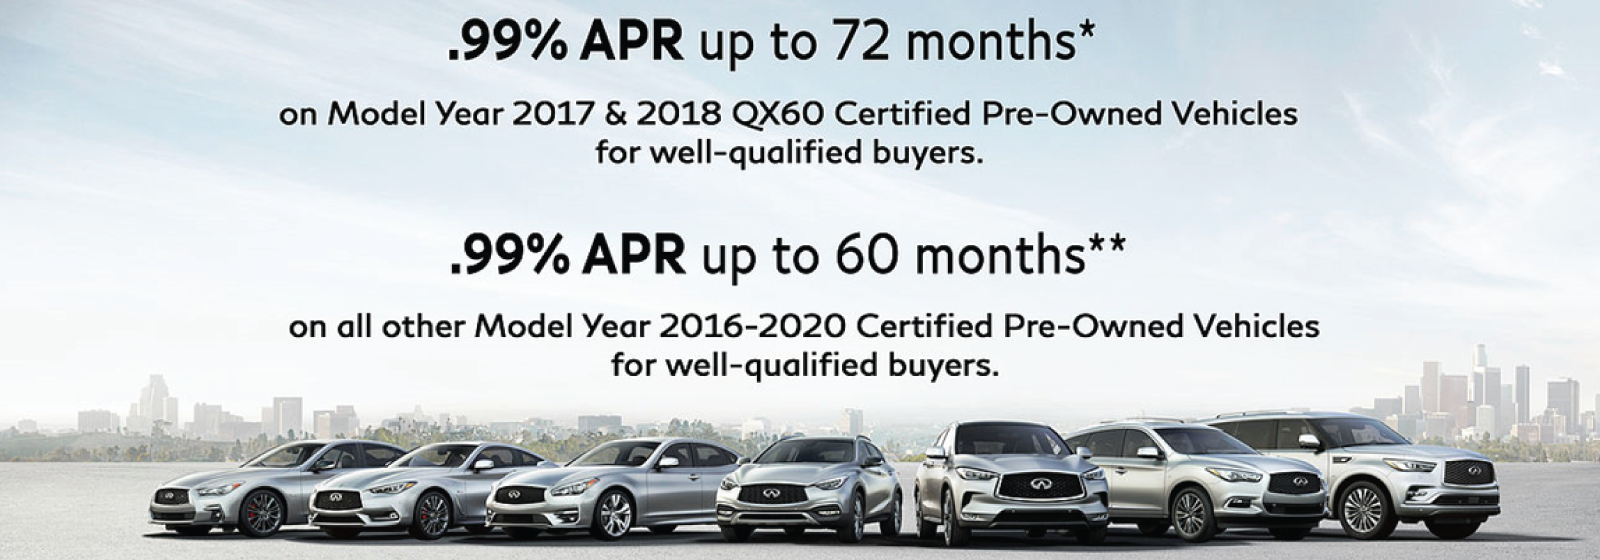 .99% APR up to 72 months* on Model Year 2017 & 2018 QX60 Certified Pre-Owned Vehicles for well-qualified buyers. .99% APR up to 60 months** on all other Model Year 2016-2020 Certified Pre-Owned Vehicles for well-qualified buyers.